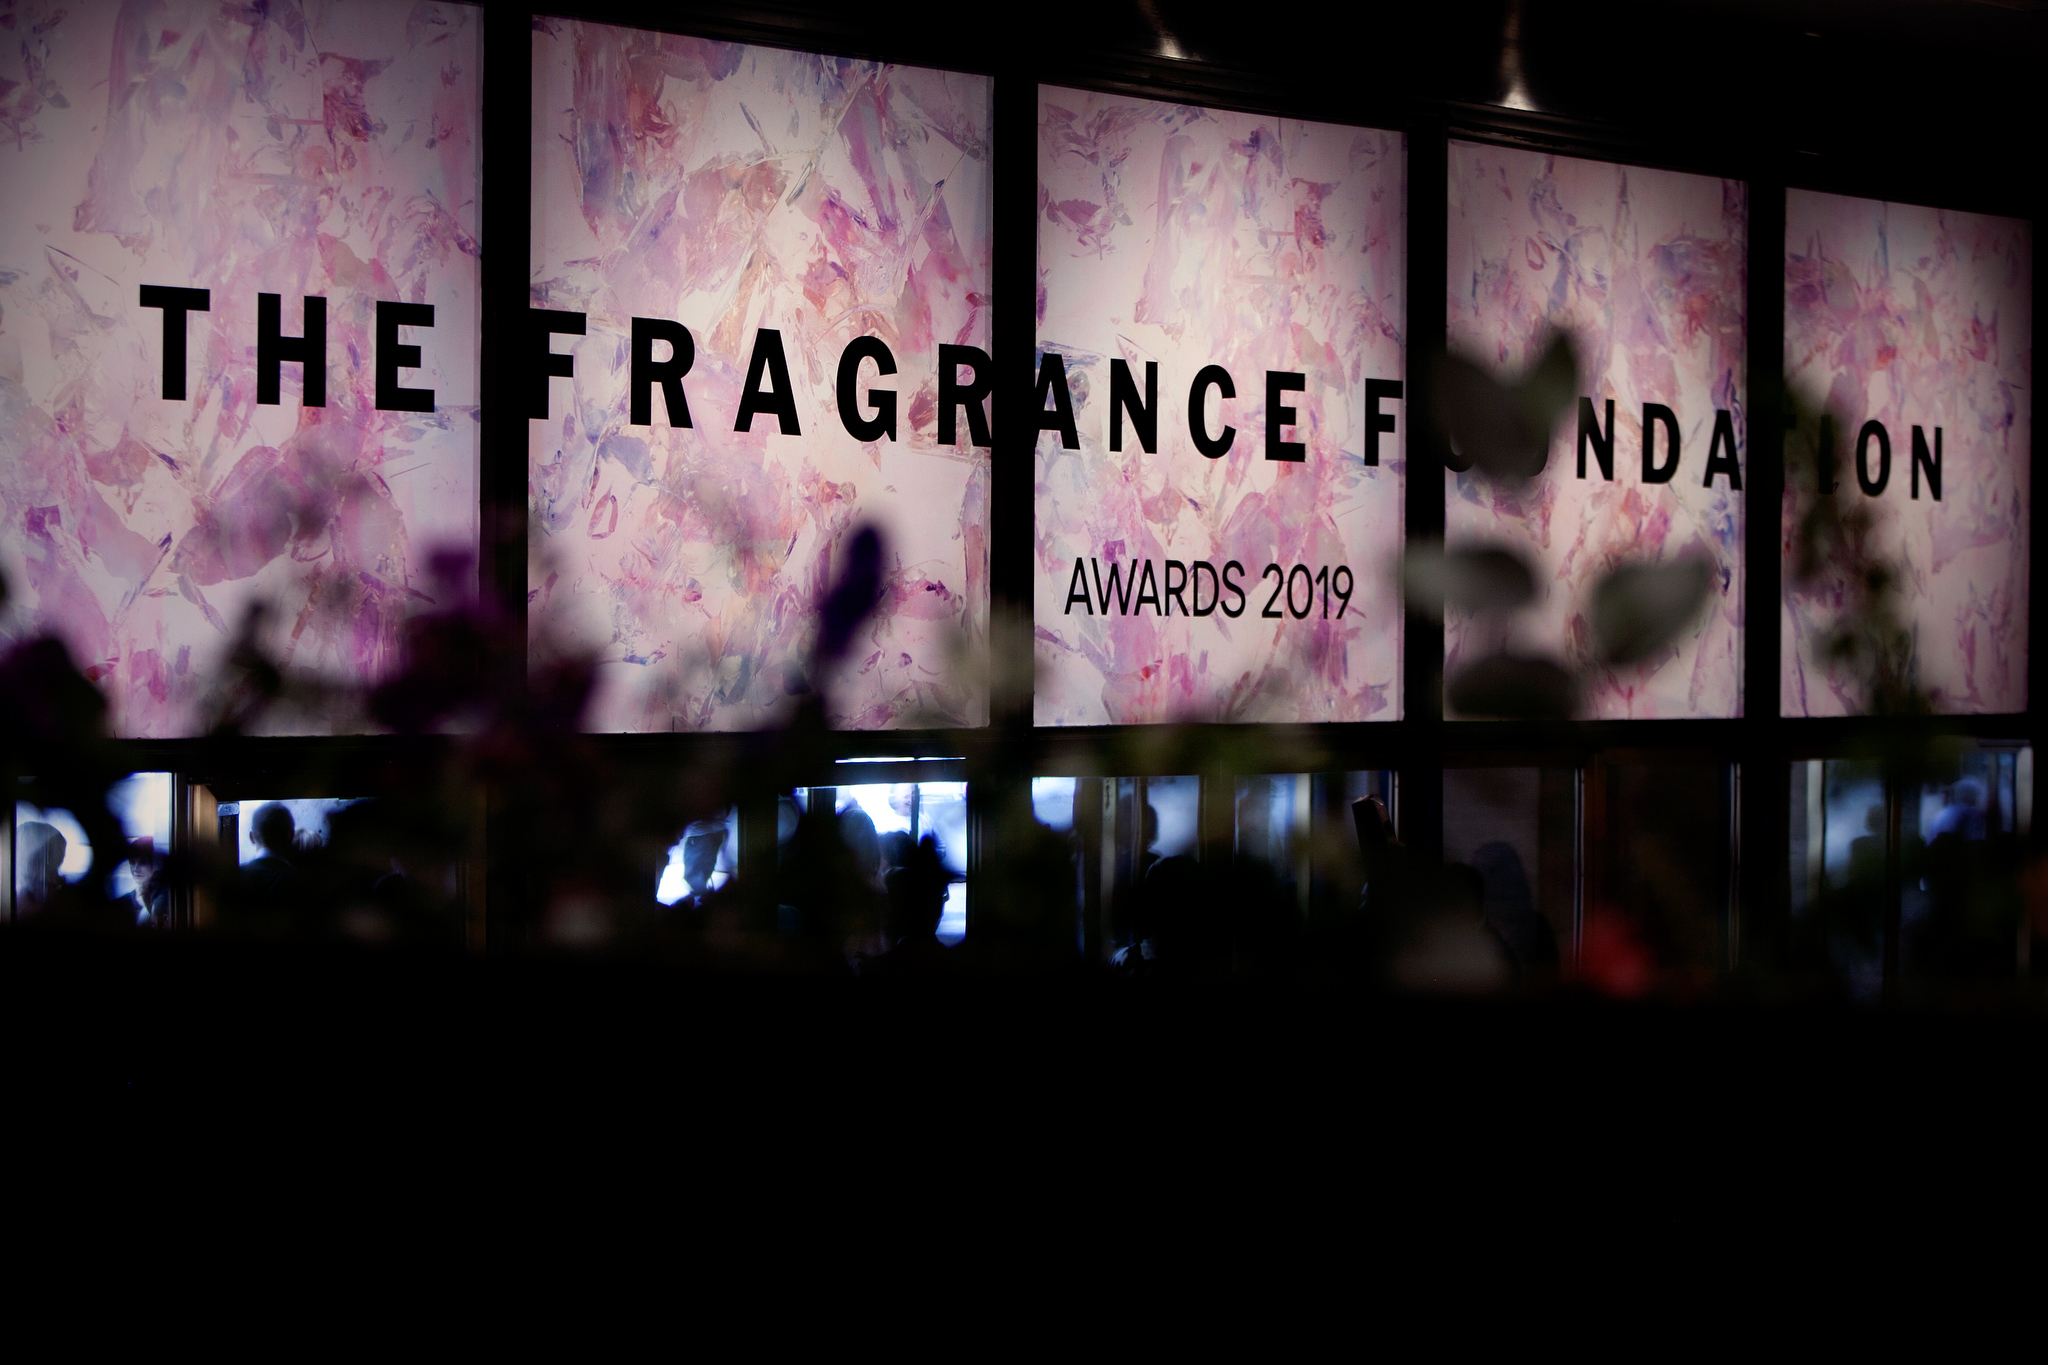 Atmosphere at the Fragrance Foundation Awards 2019.